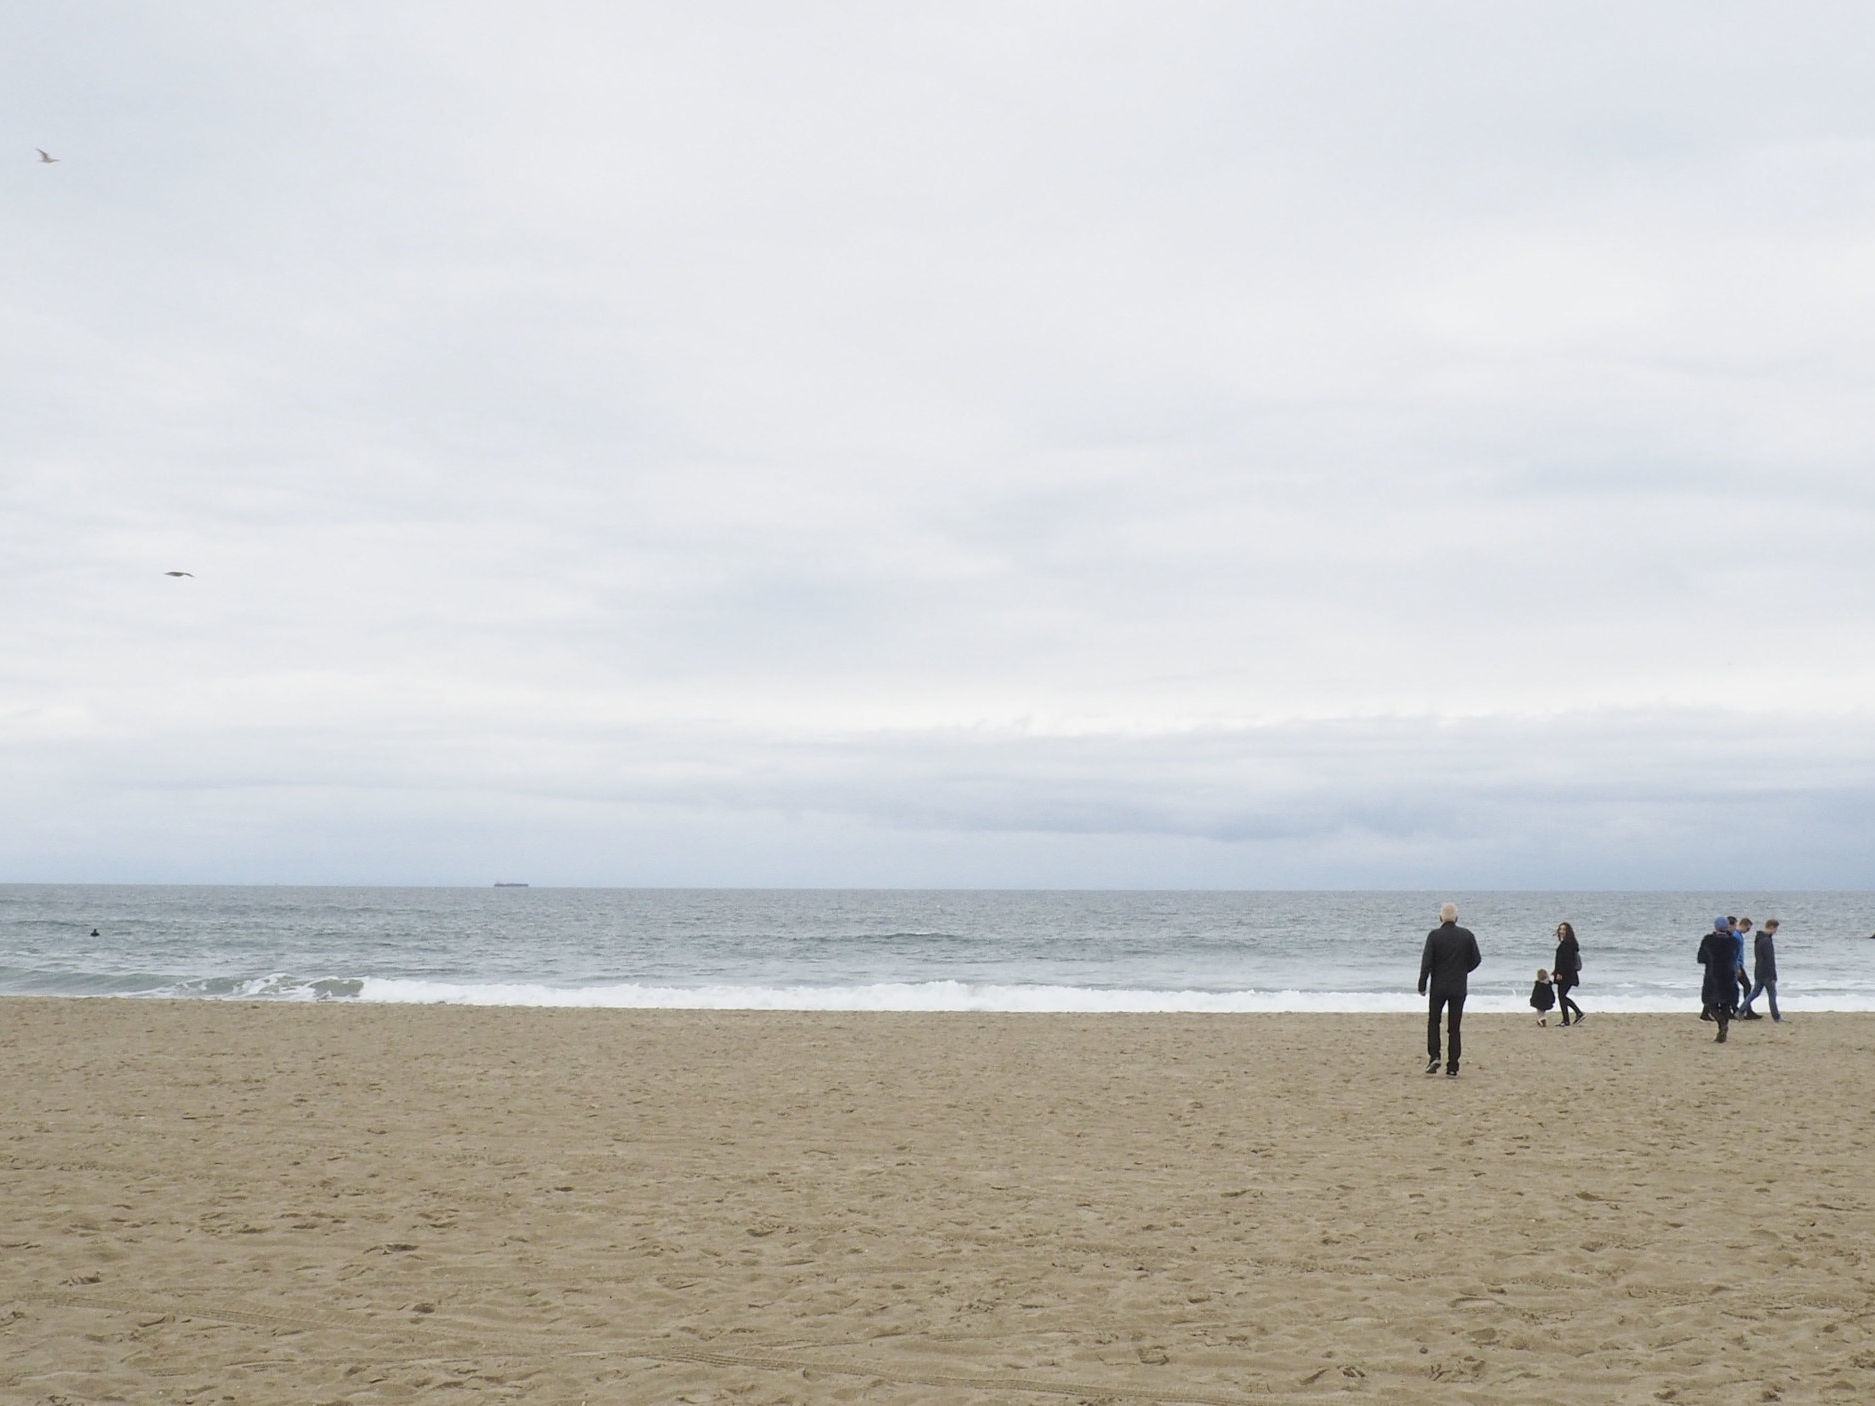 Get a chance to stop at the beach. Even when it's cloudy, the breeze is refreshing.